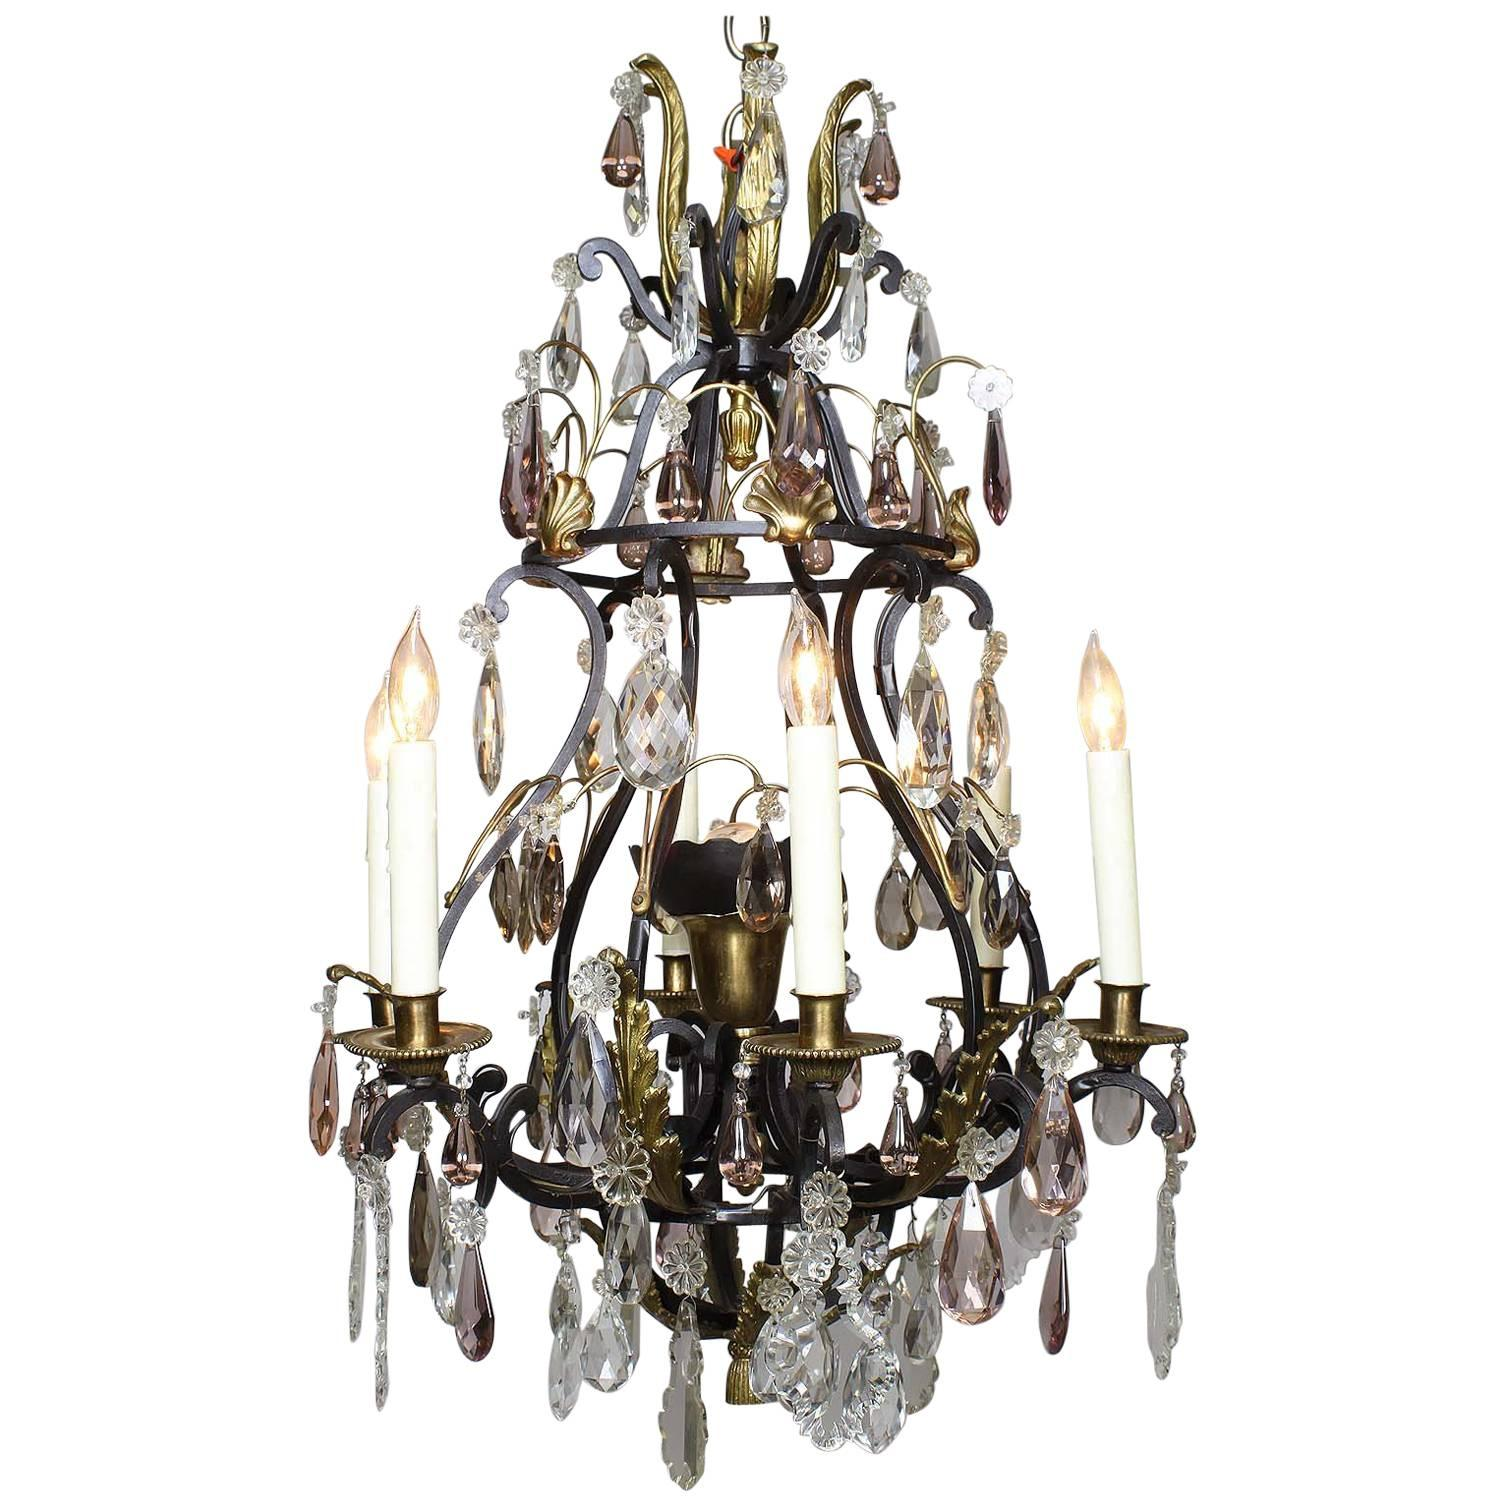 French 19th-20th Century Louis XV Style Wrought Iron & Bronze Crystal Chandelier